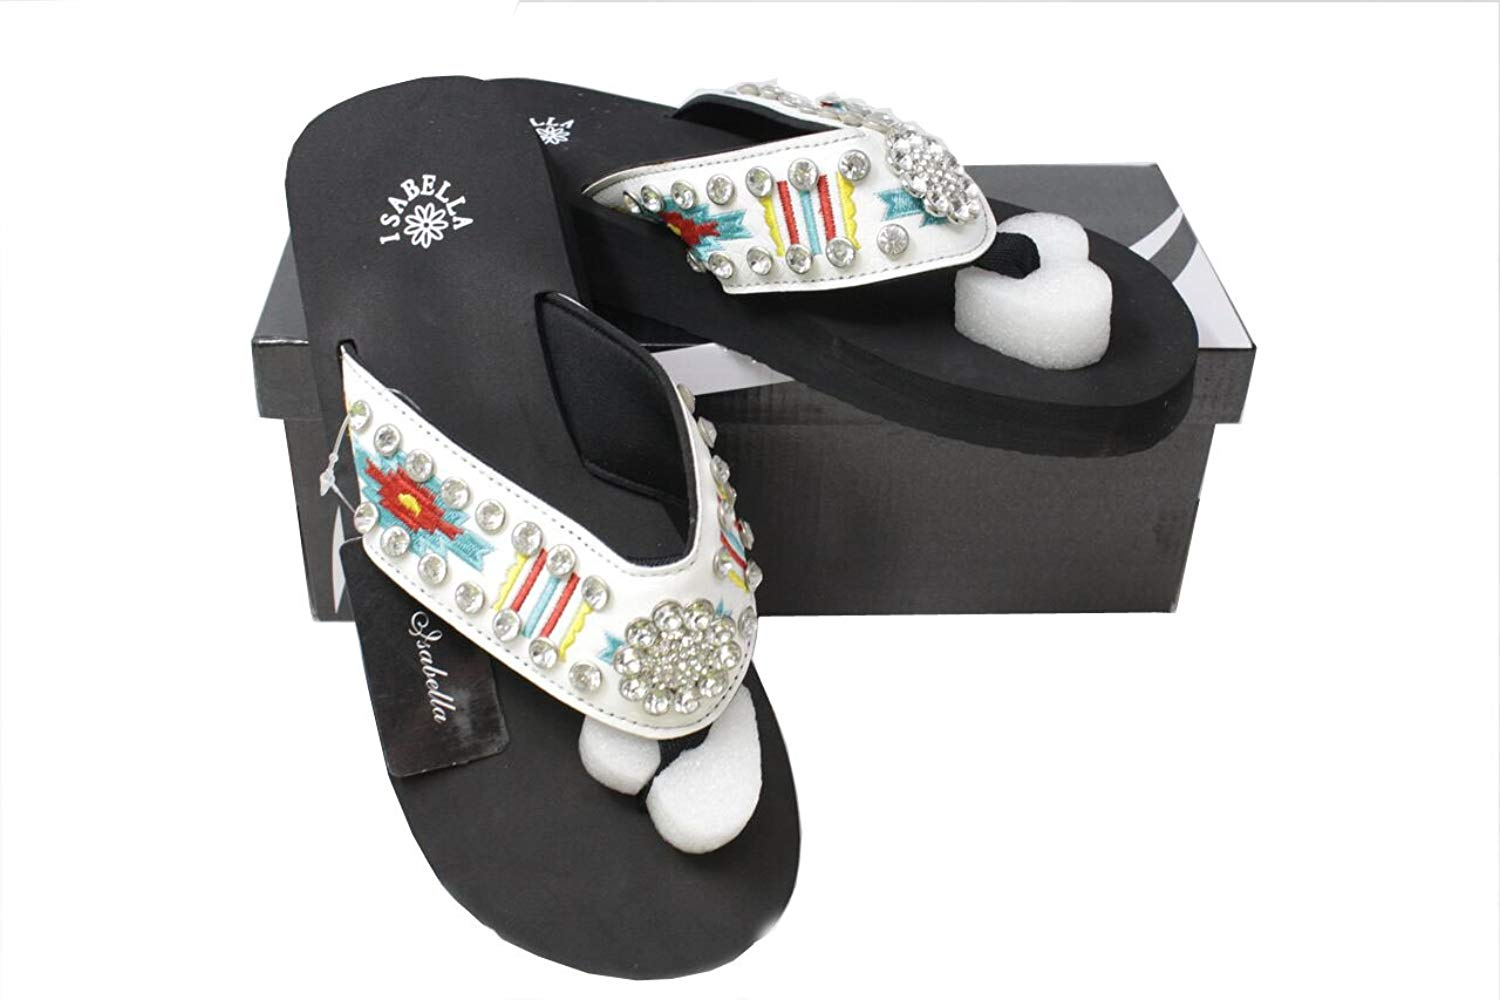 46dc20713b53b Get Quotations · Isabella Western Women Rhinestone Concho Bling Thin Sole Flip  Flops White Strap Slippers Sandals